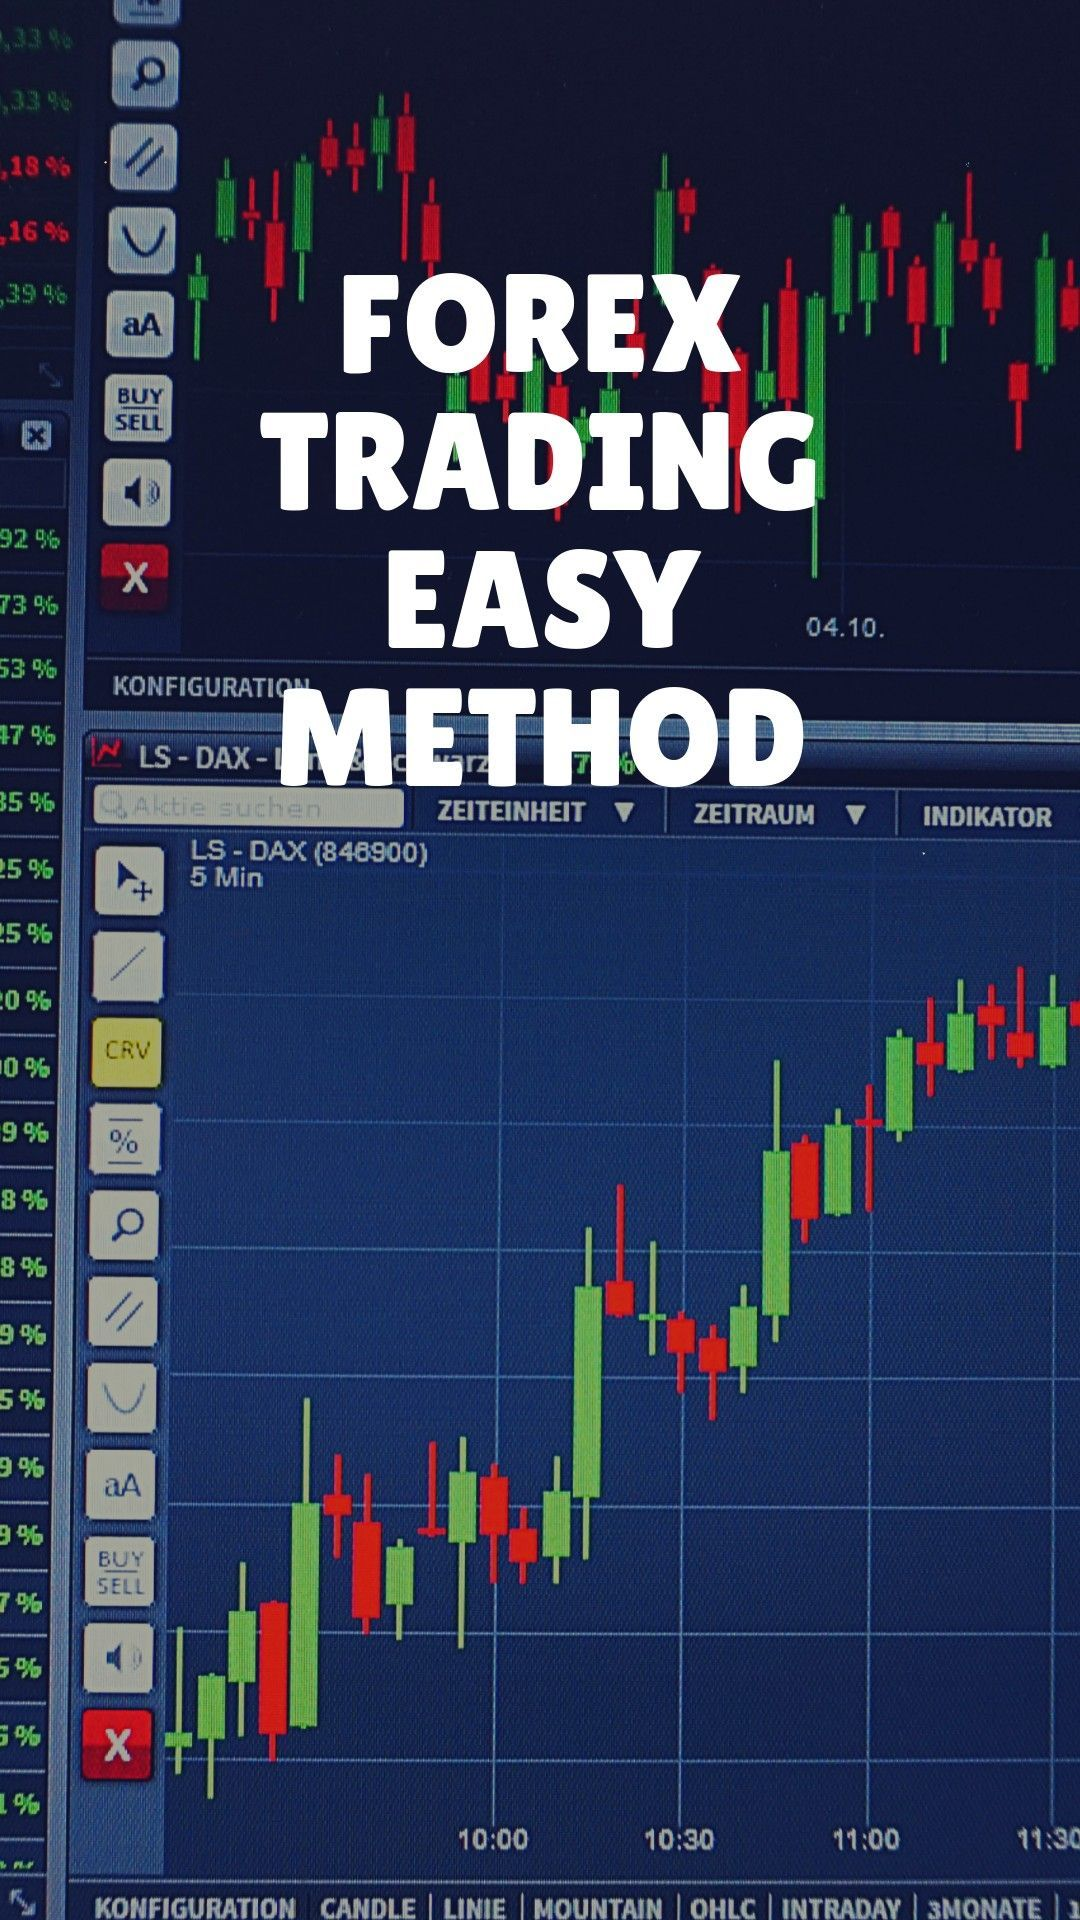 Is Forex Trading Difficult or Easy?